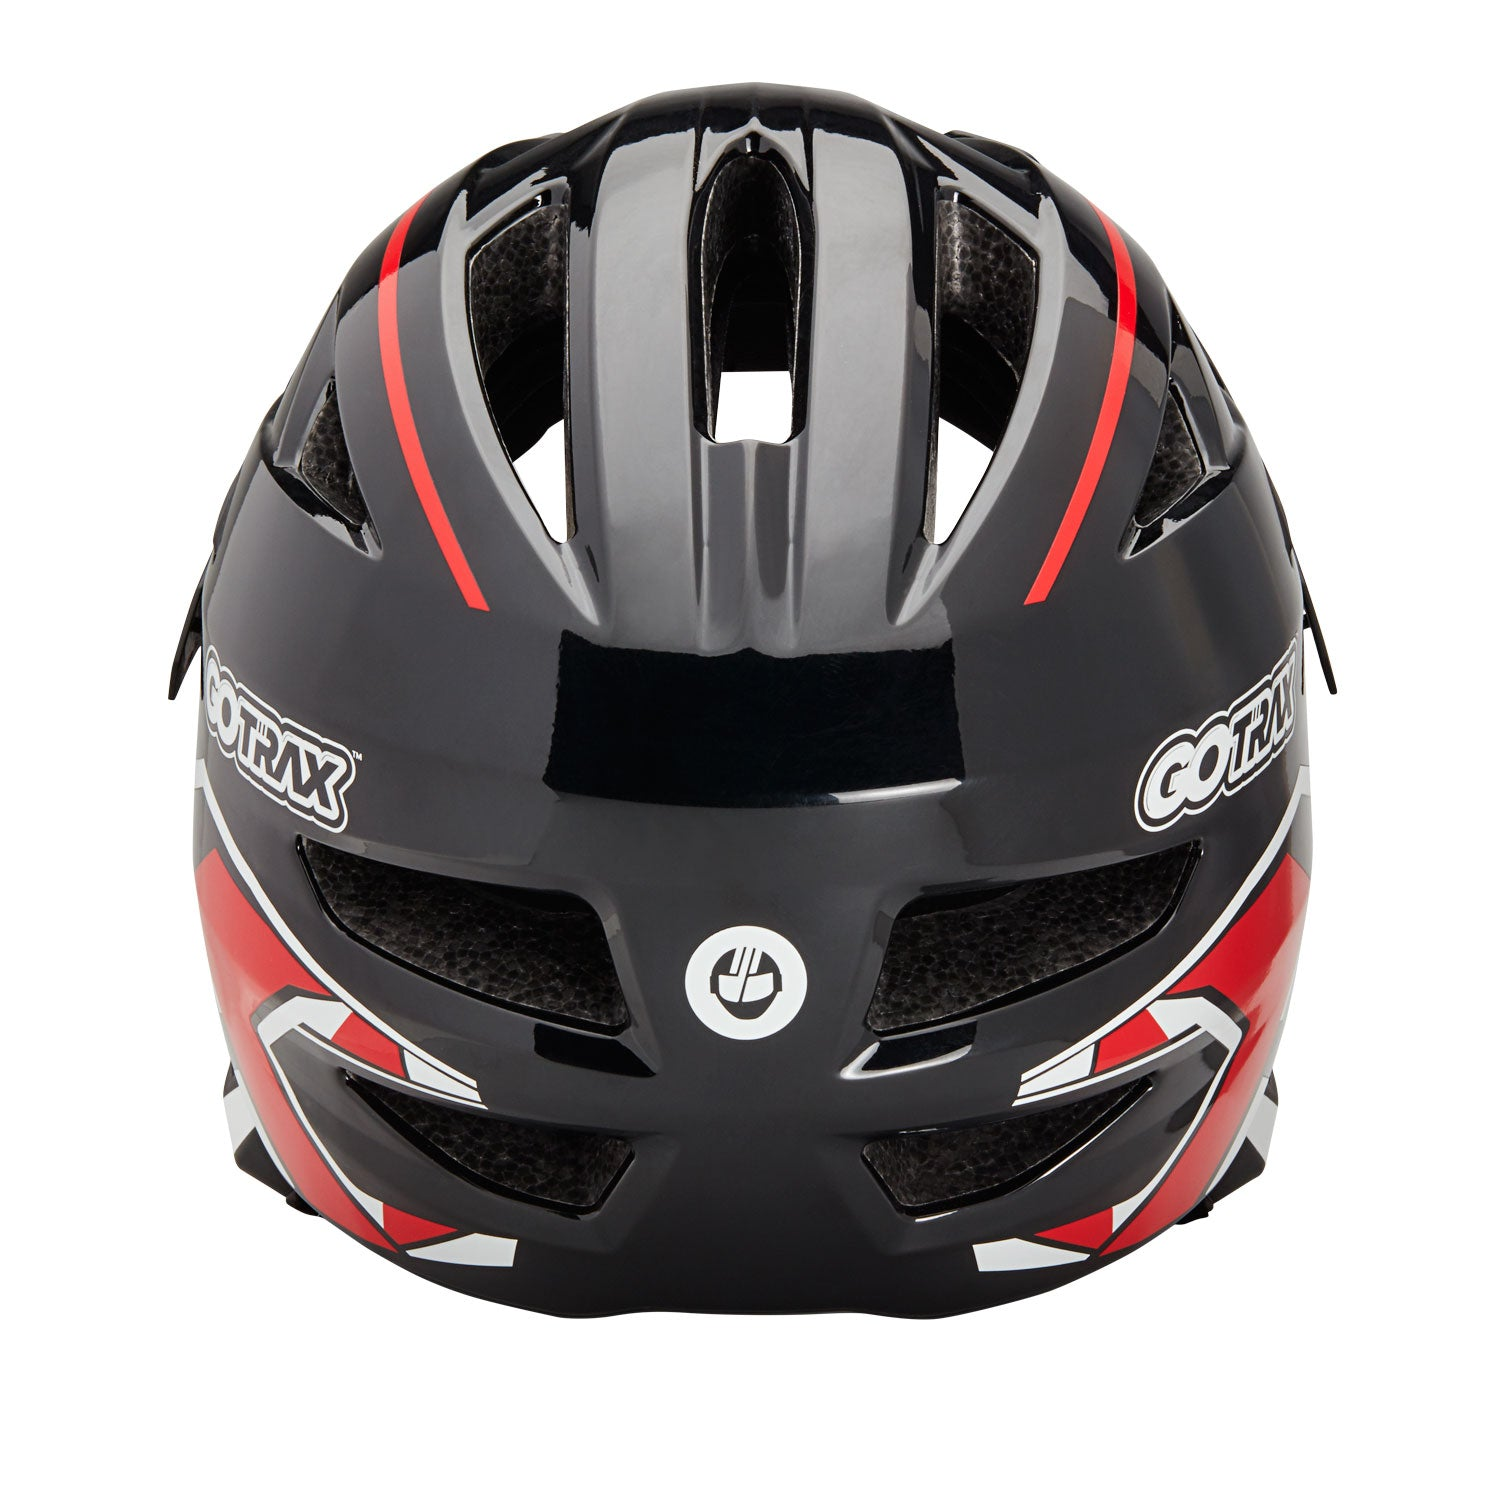 Red GOTRAX 2 in 1 Helmet Back Image